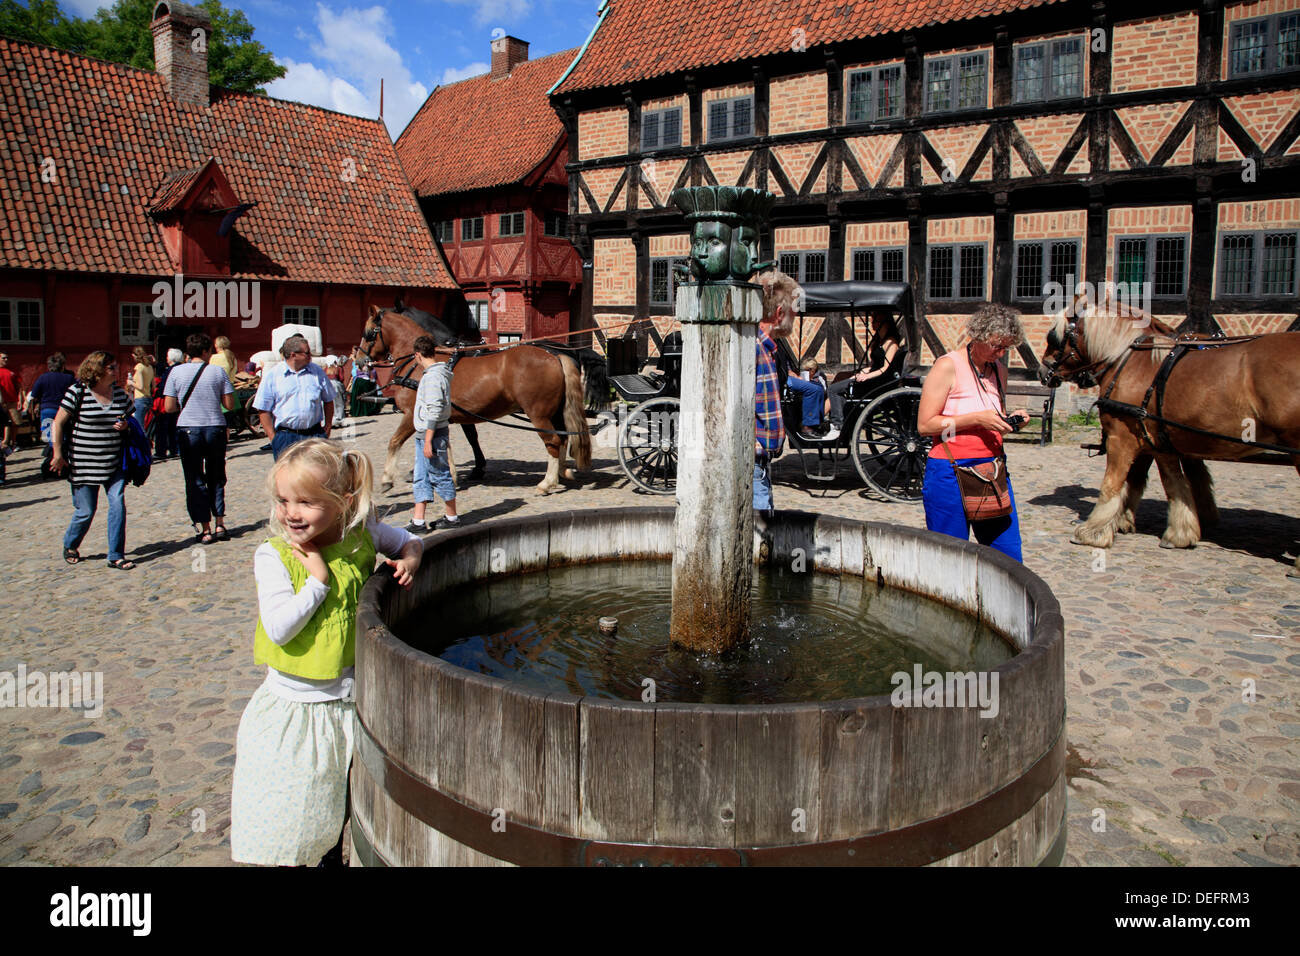 Fountain at The Old Town open air museum DEN GAMLE BY, Arhus, Jutland, Denmark, Scandinavia, Europe - Stock Image